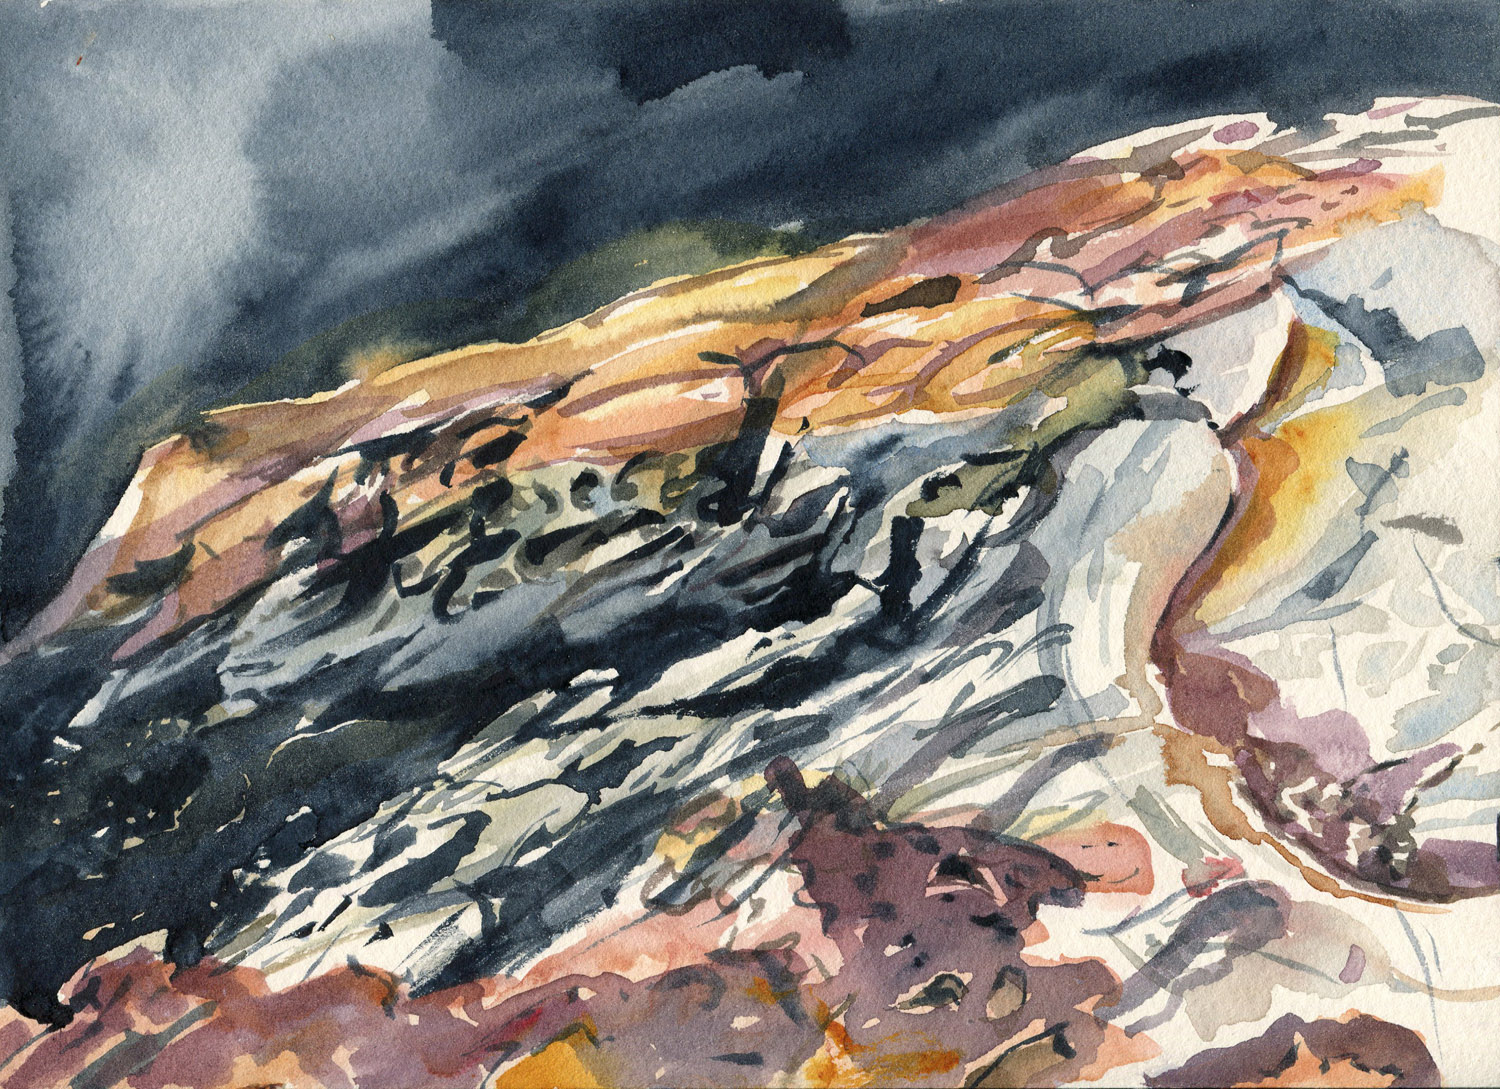 Field Studies (Bittangabee Bay, Ben Boyd National Park 1), watercolour on paper, 18cm x 25cm, 2014